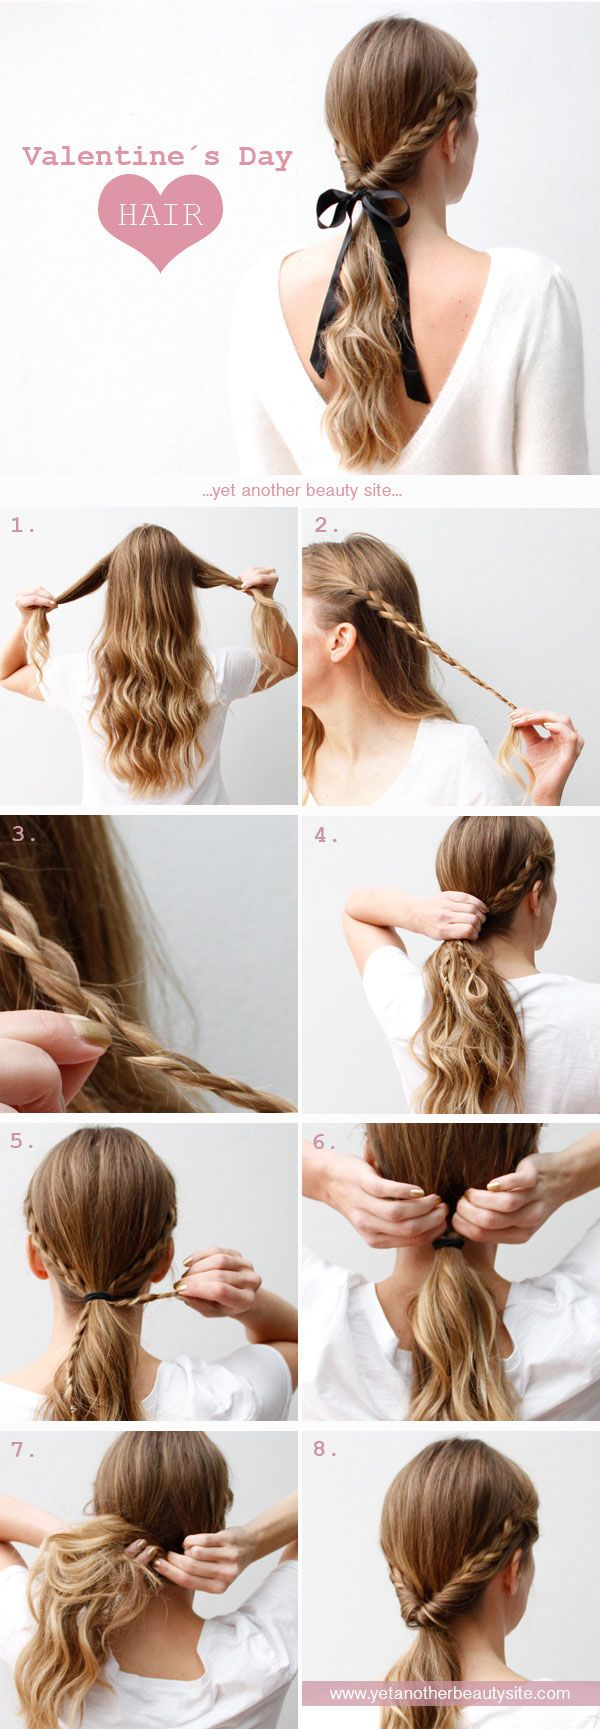 wear this hair: a simple braided beauty   hair style, ponytail and